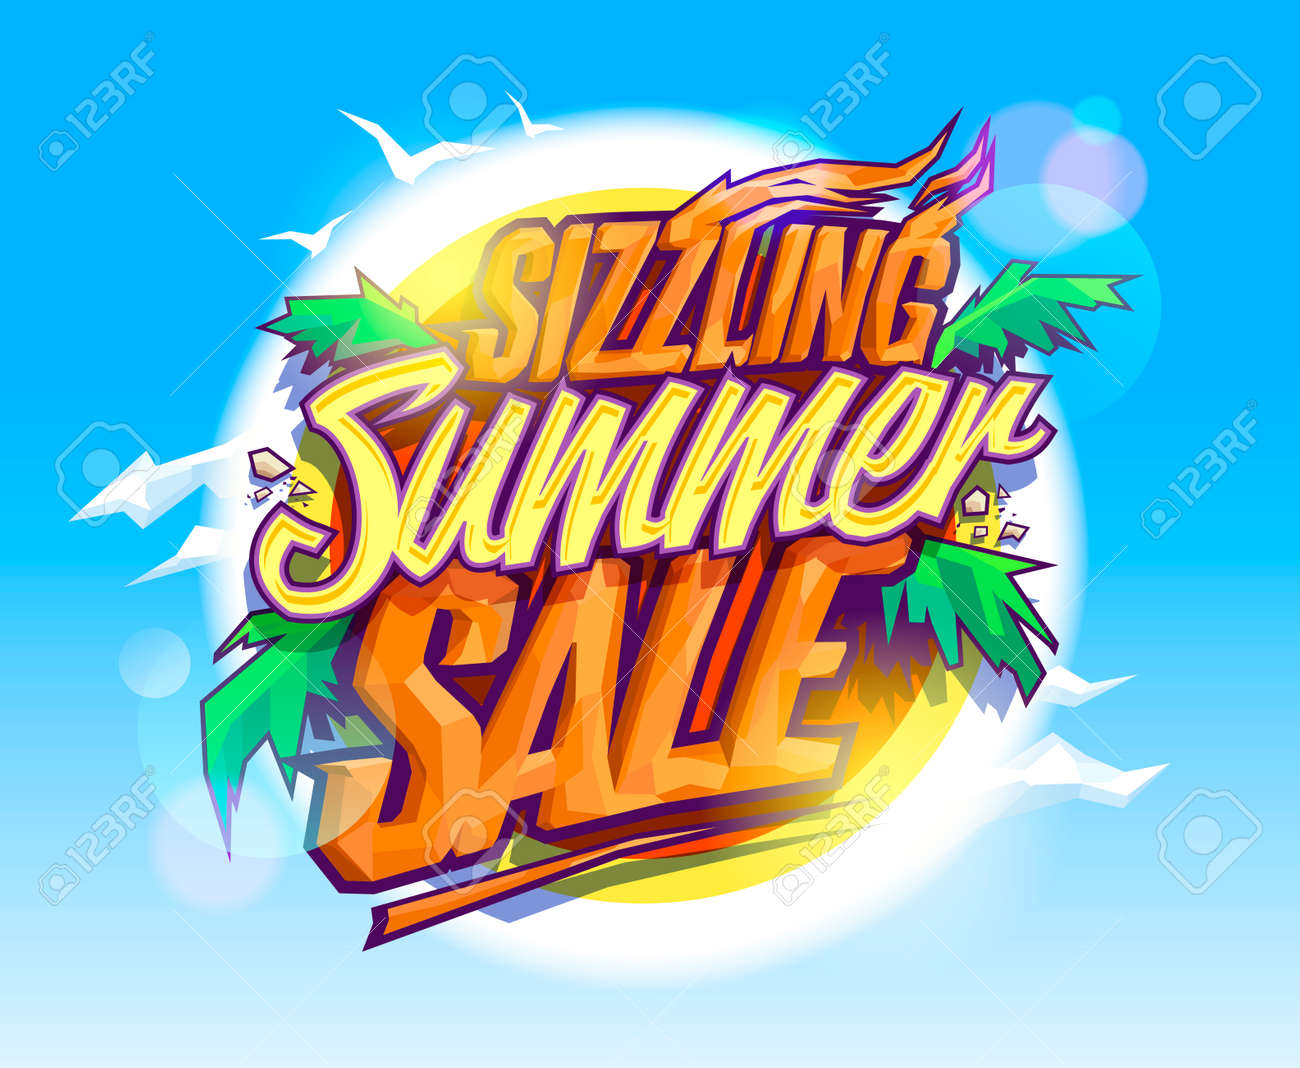 Sizzling summer sale, hot tropical design concept, sun, palms leaves and sky - 59799078